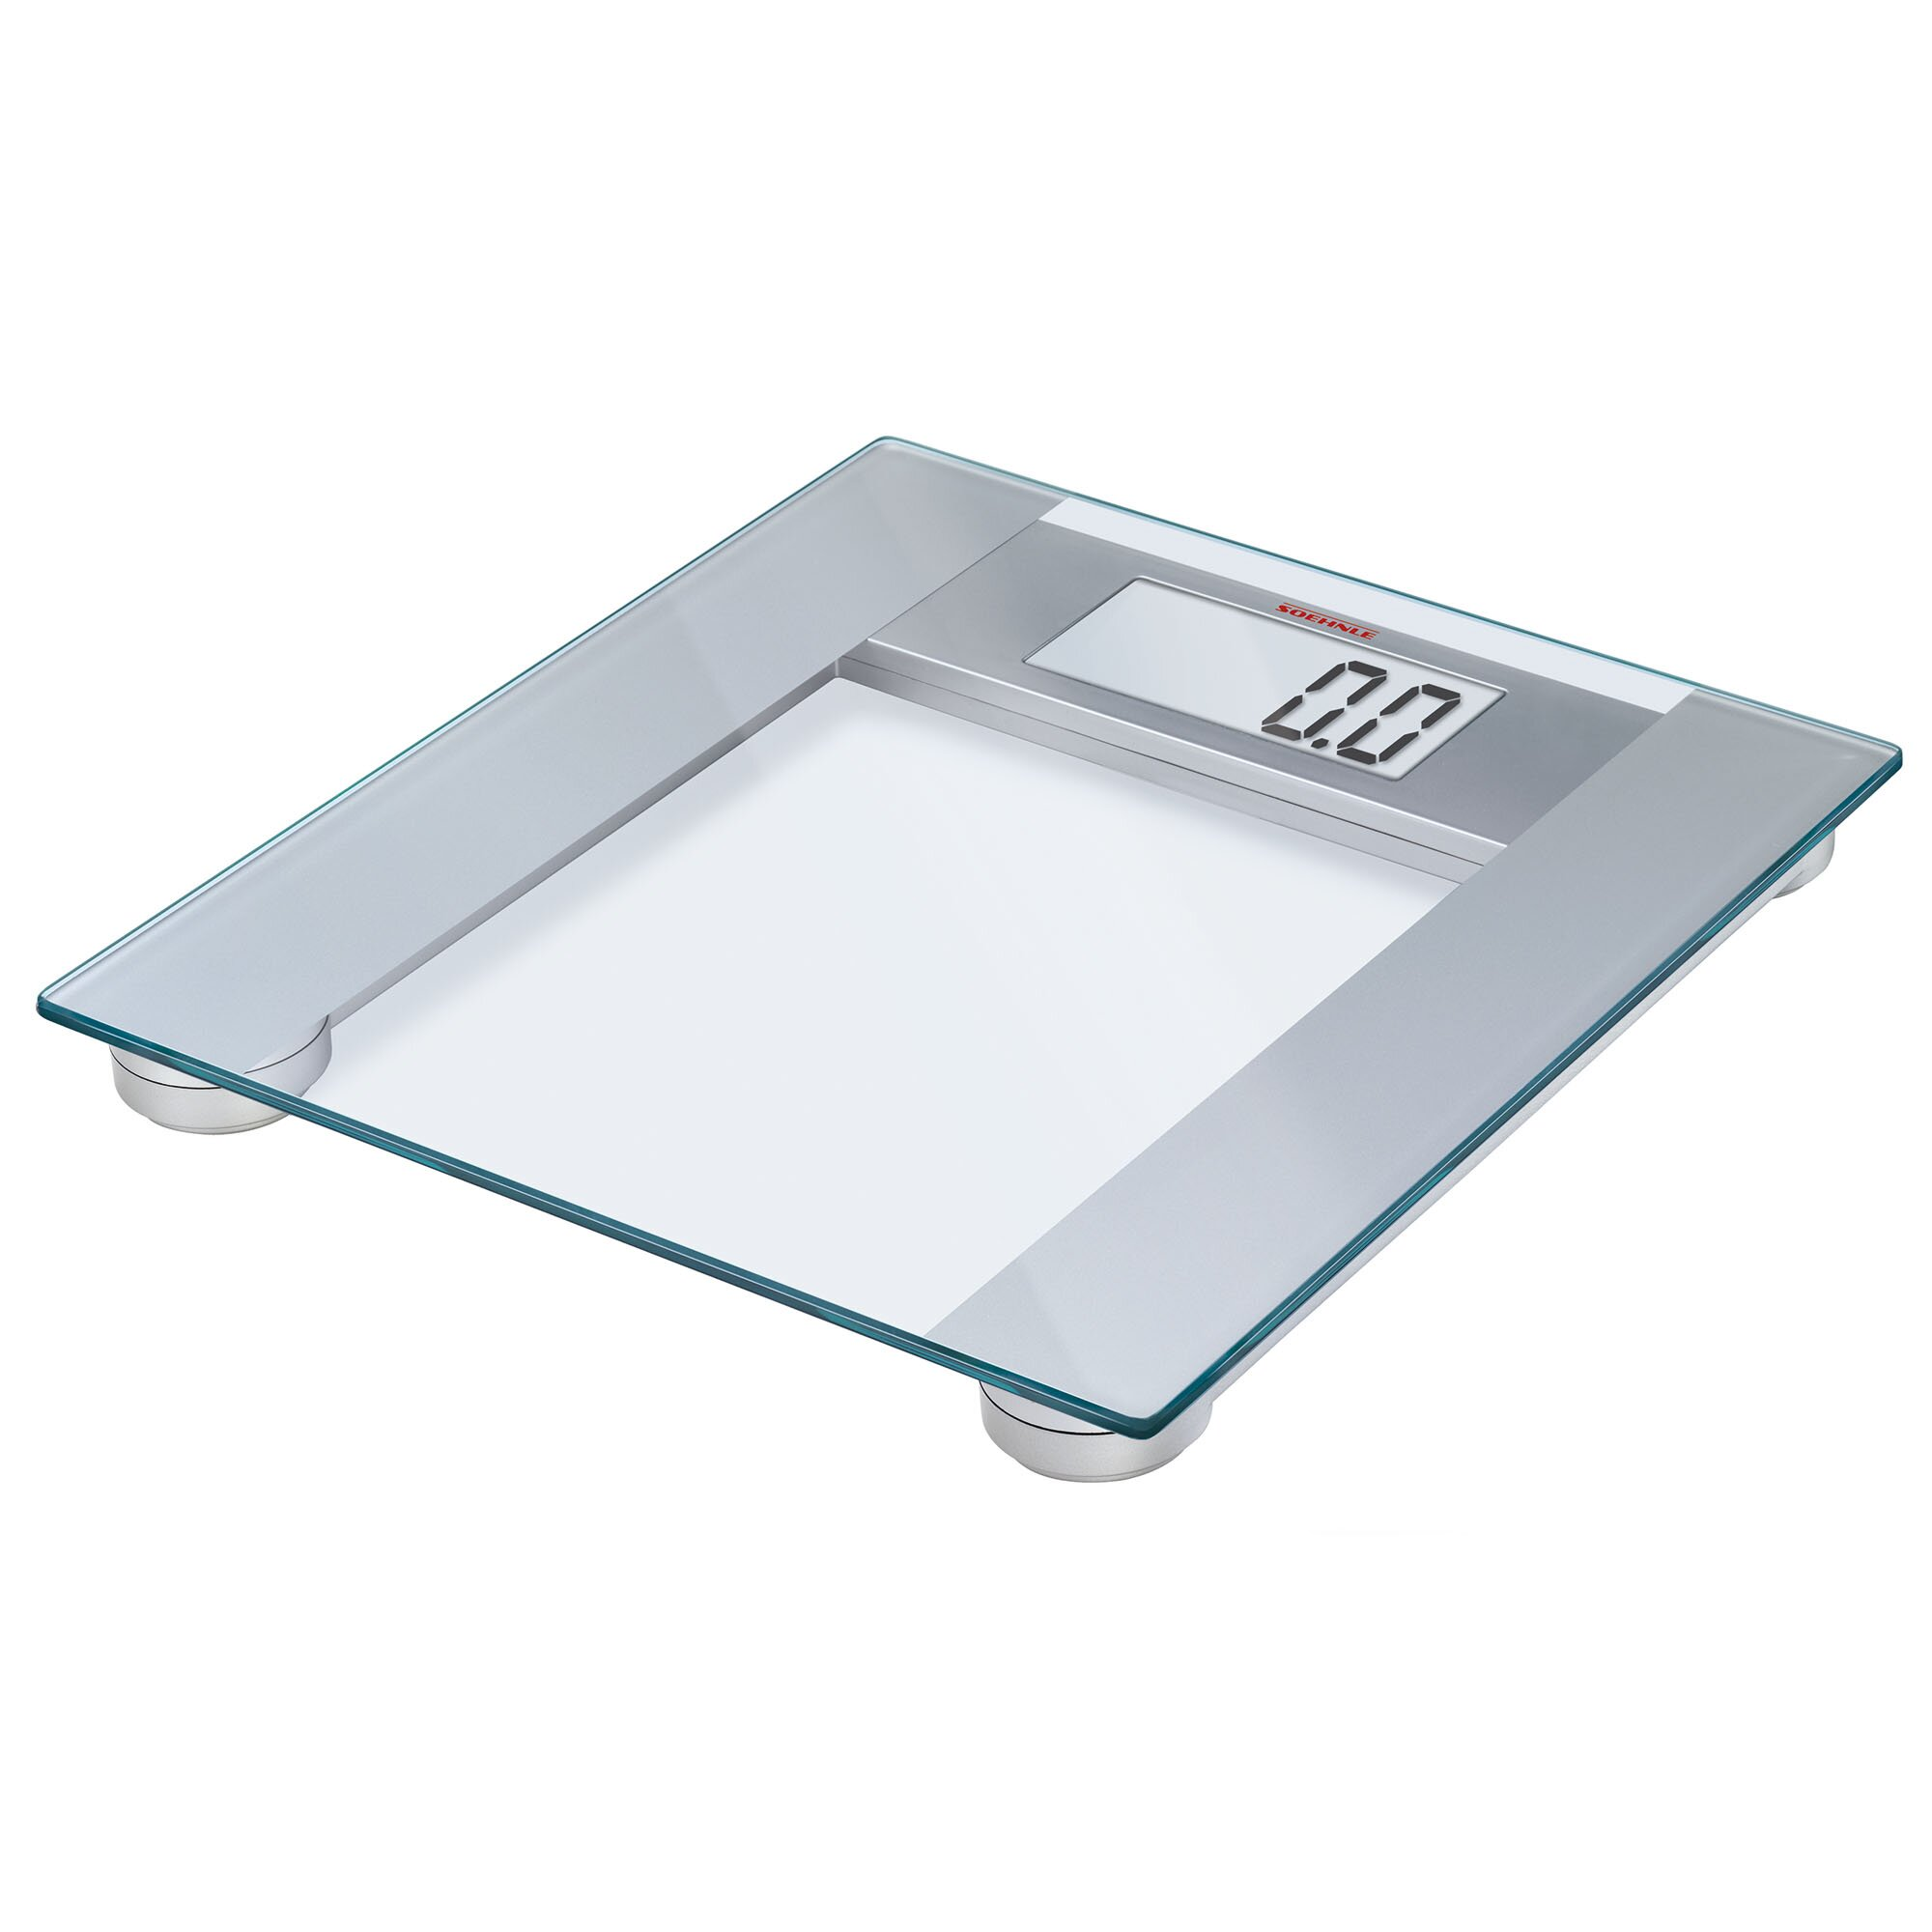 soehnle pharo  precision digital bathroom scale  reviews  wayfair, Bathroom decor